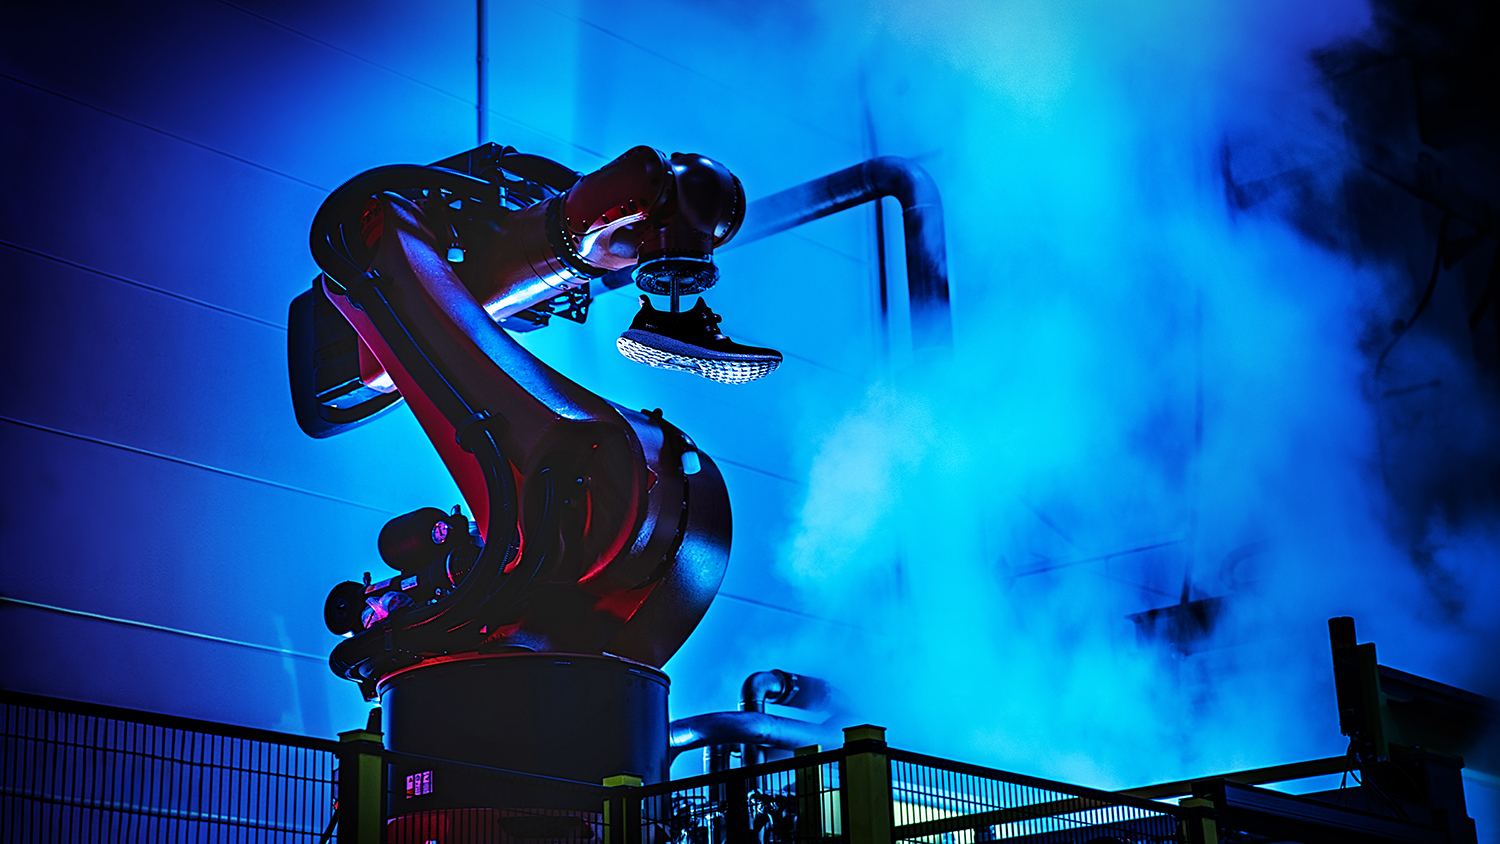 Tinker, tailor, solder, spry: Adidas uses robotics, automation and 3D printing in advanced manufacturing process